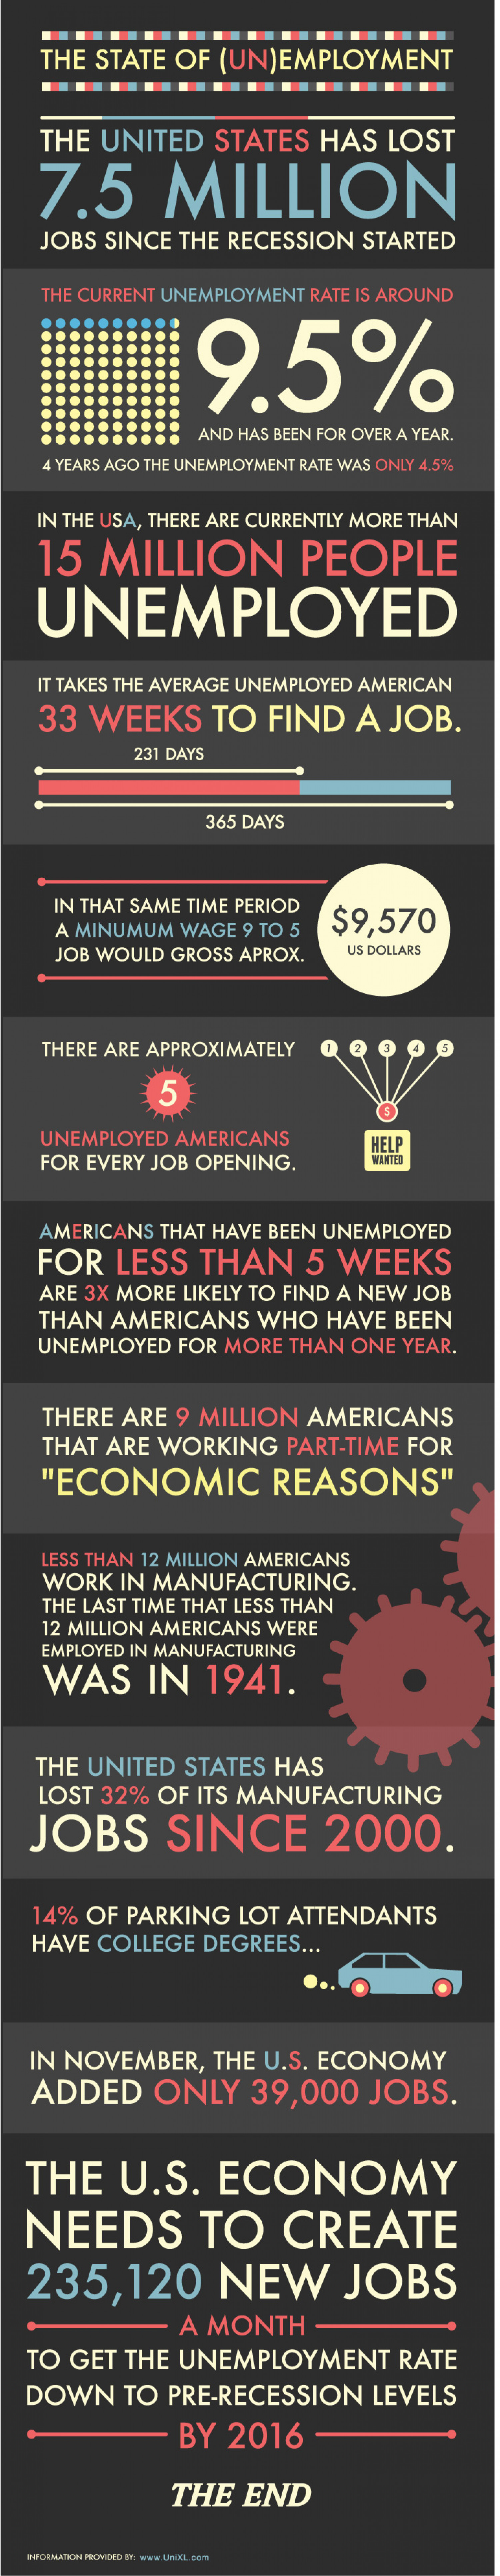 The State of Unemployment: Worst Cities for Unemployment Benefits ... Infographic